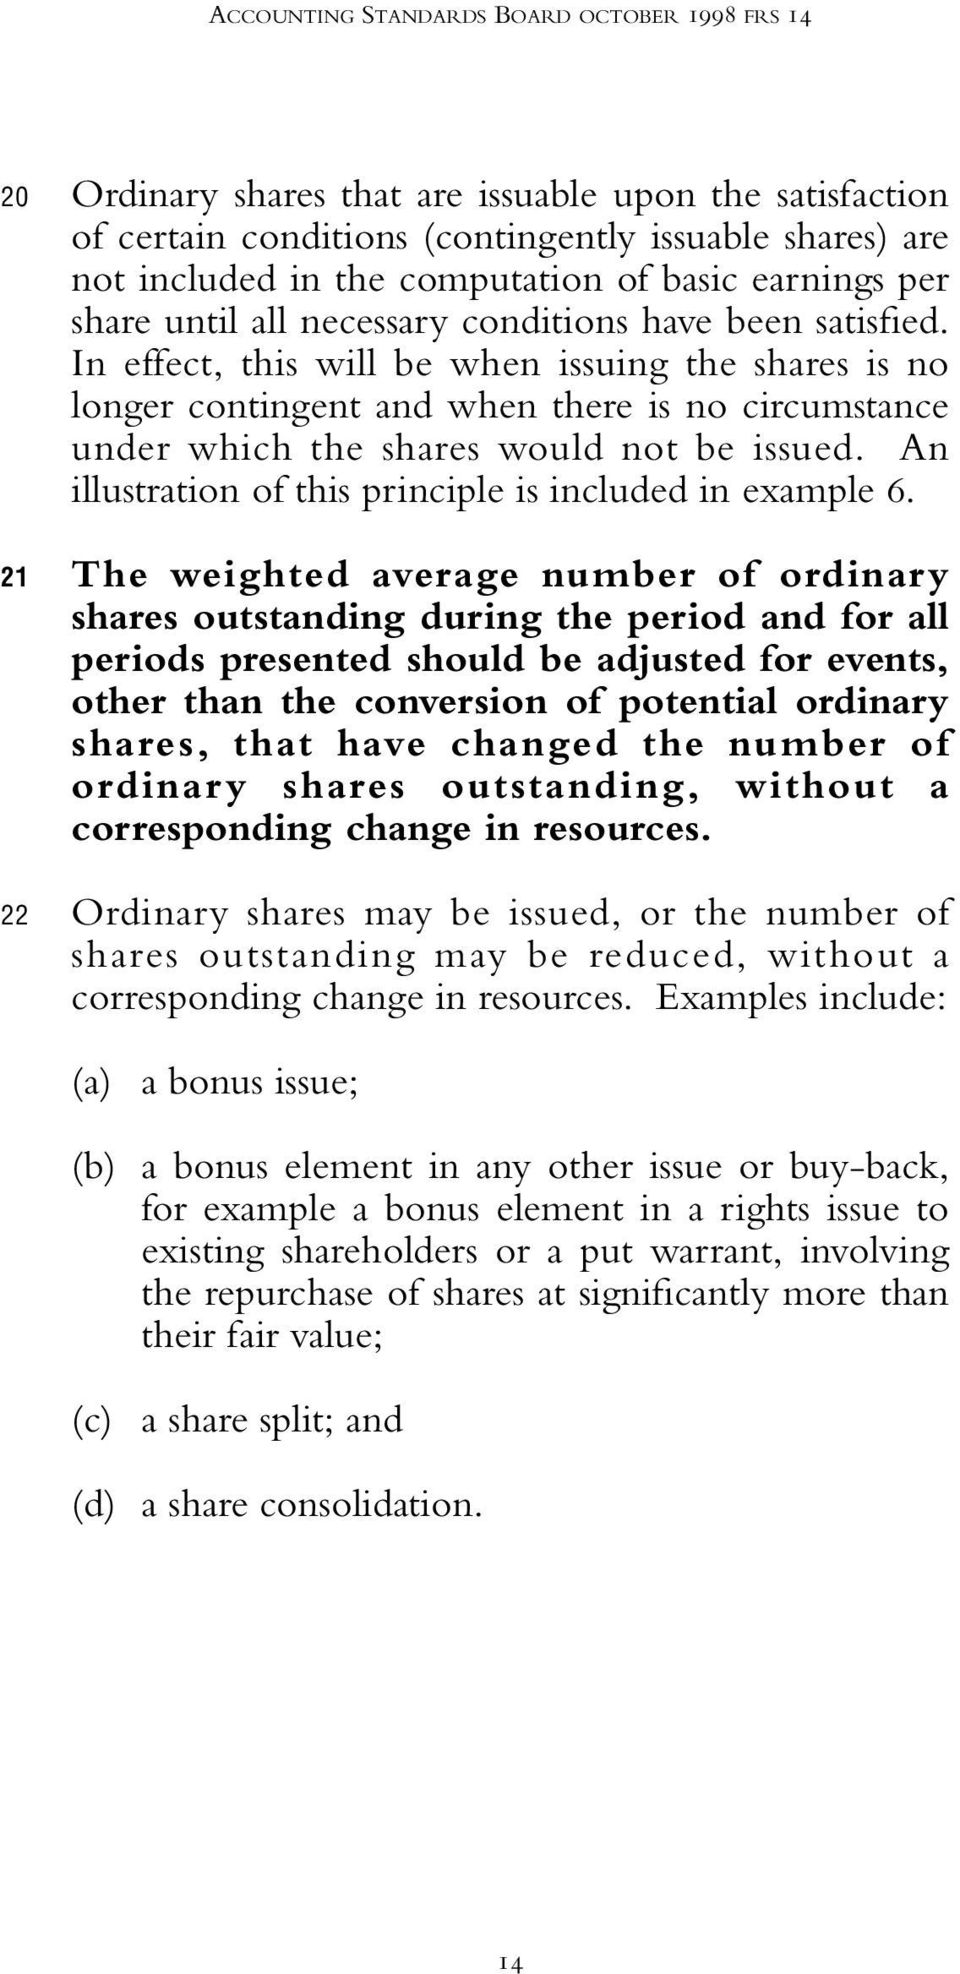 In effect, this will be when issuing the shares is no longer contingent and when there is no circumstance under which the shares would not be issued.